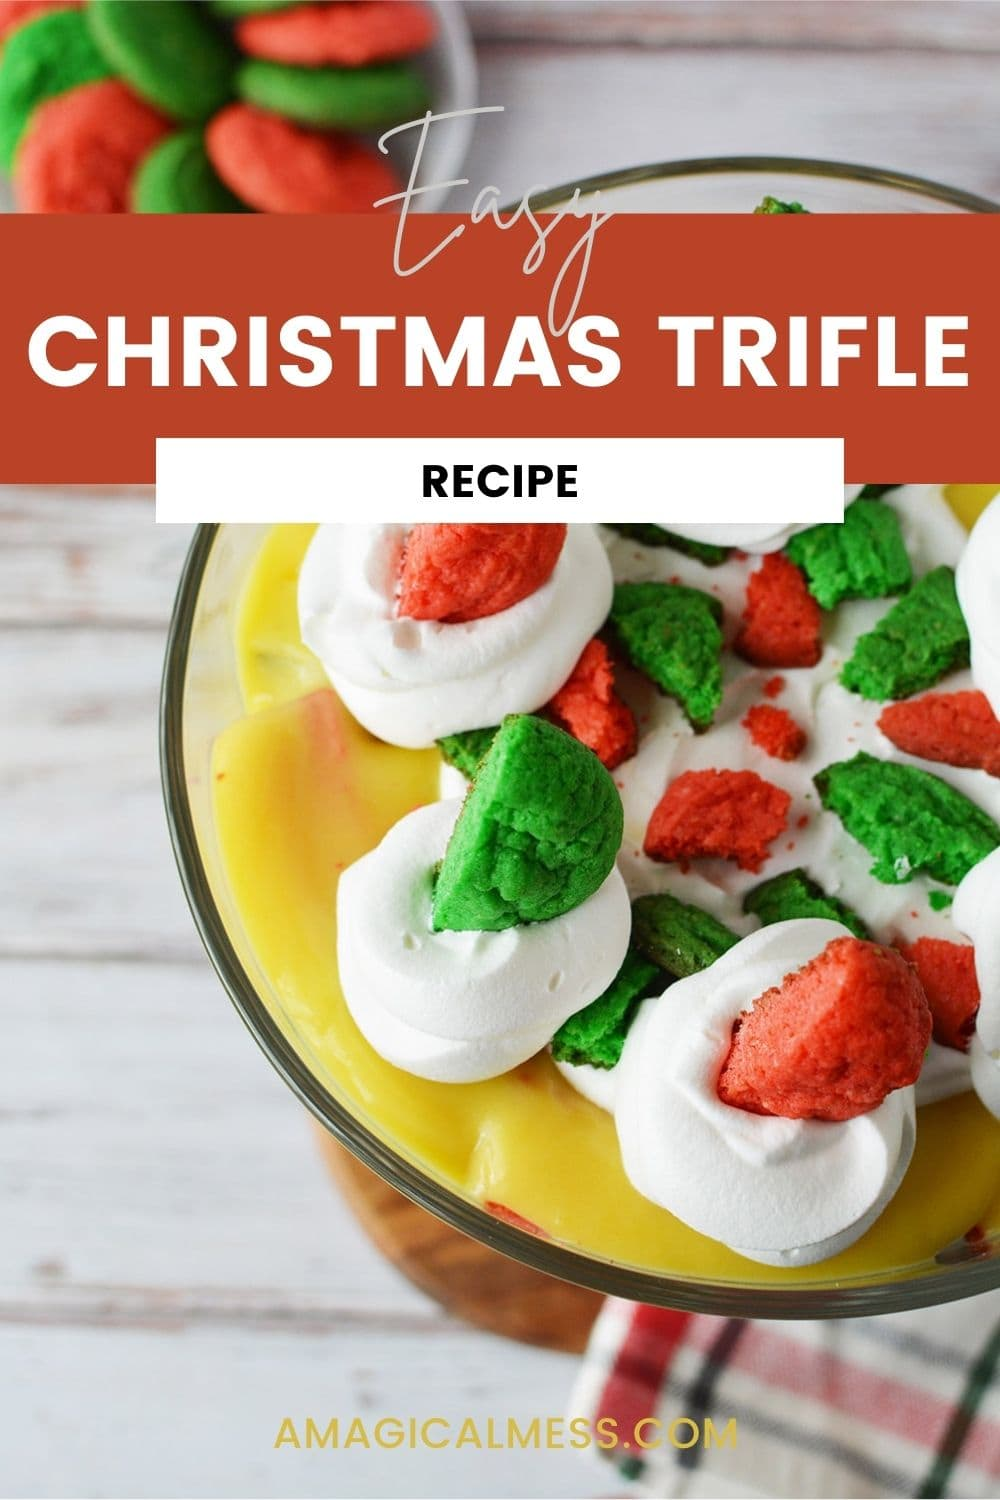 Christmas trifle with red and green cookies on top.